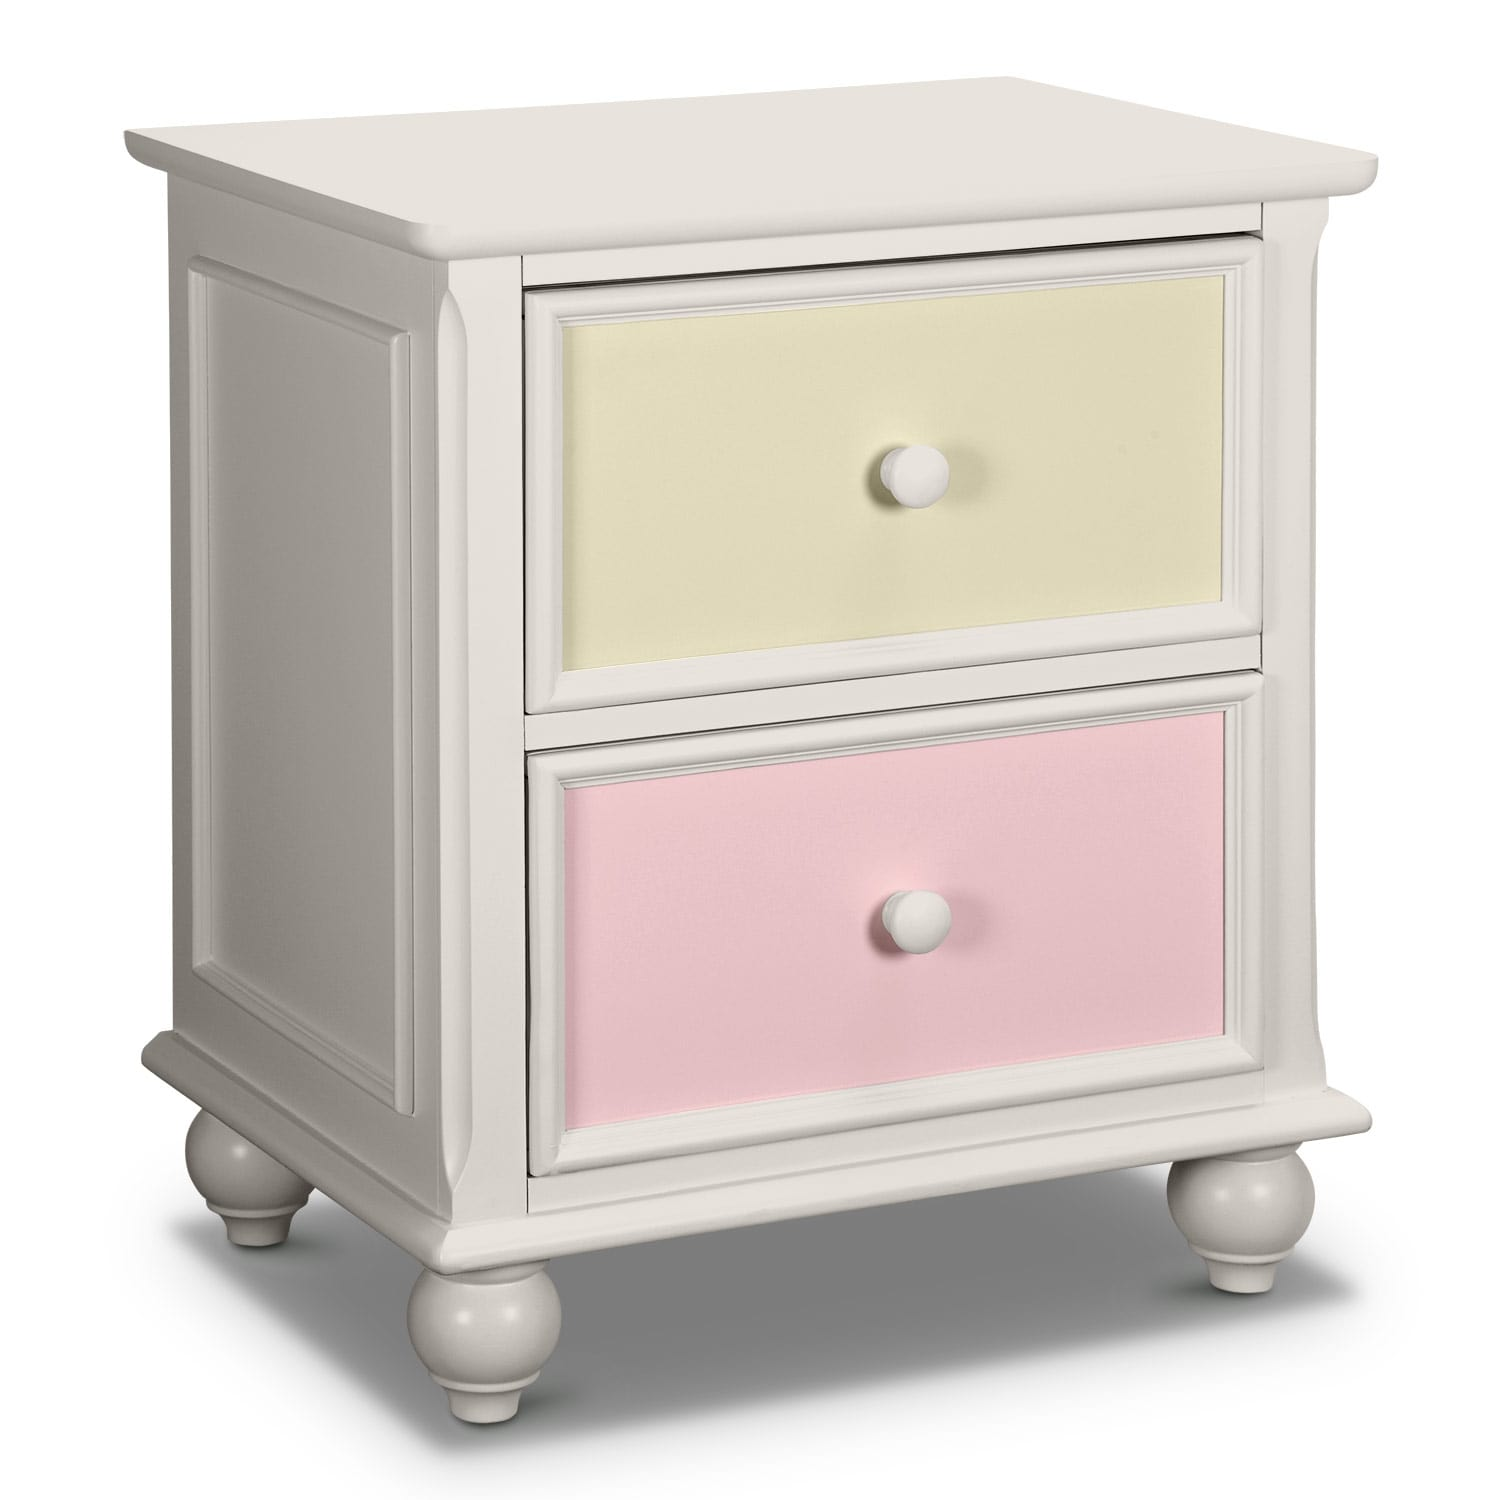 Kids Furniture - Colorworks Nightstand - White